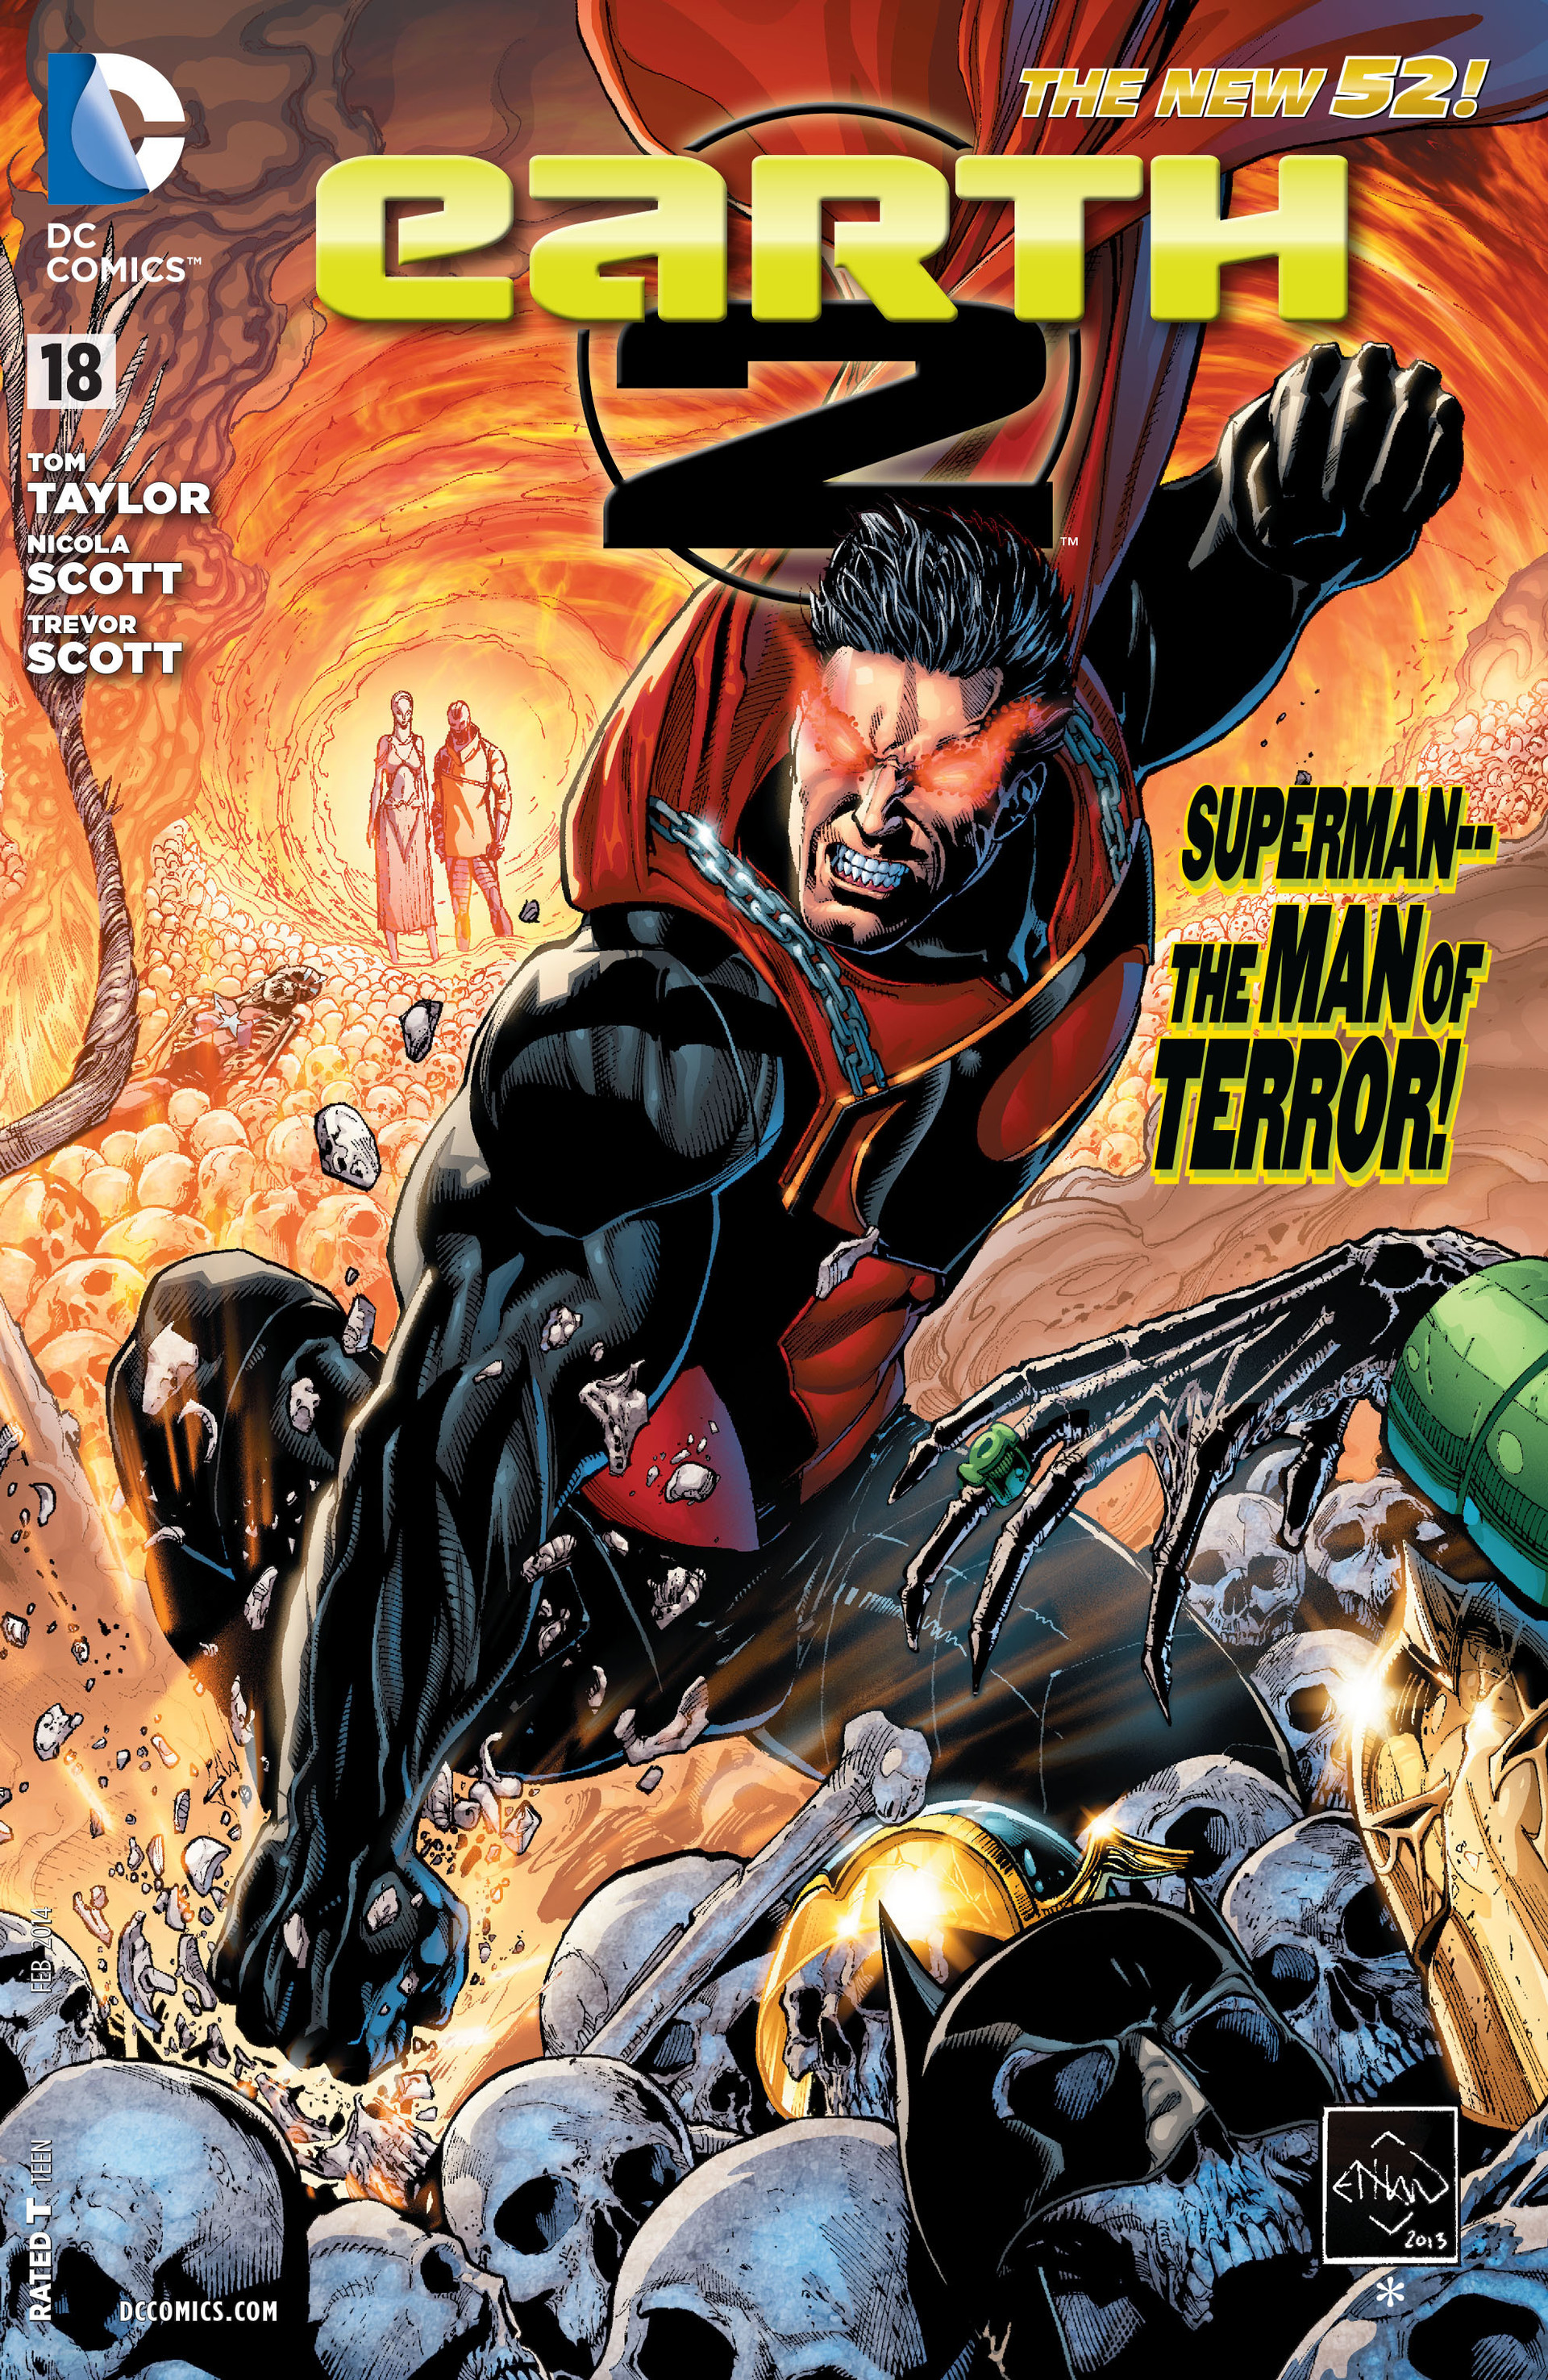 Earth 2 Vol. 2: The Tower of Fate (The New 52) by Robinson, James